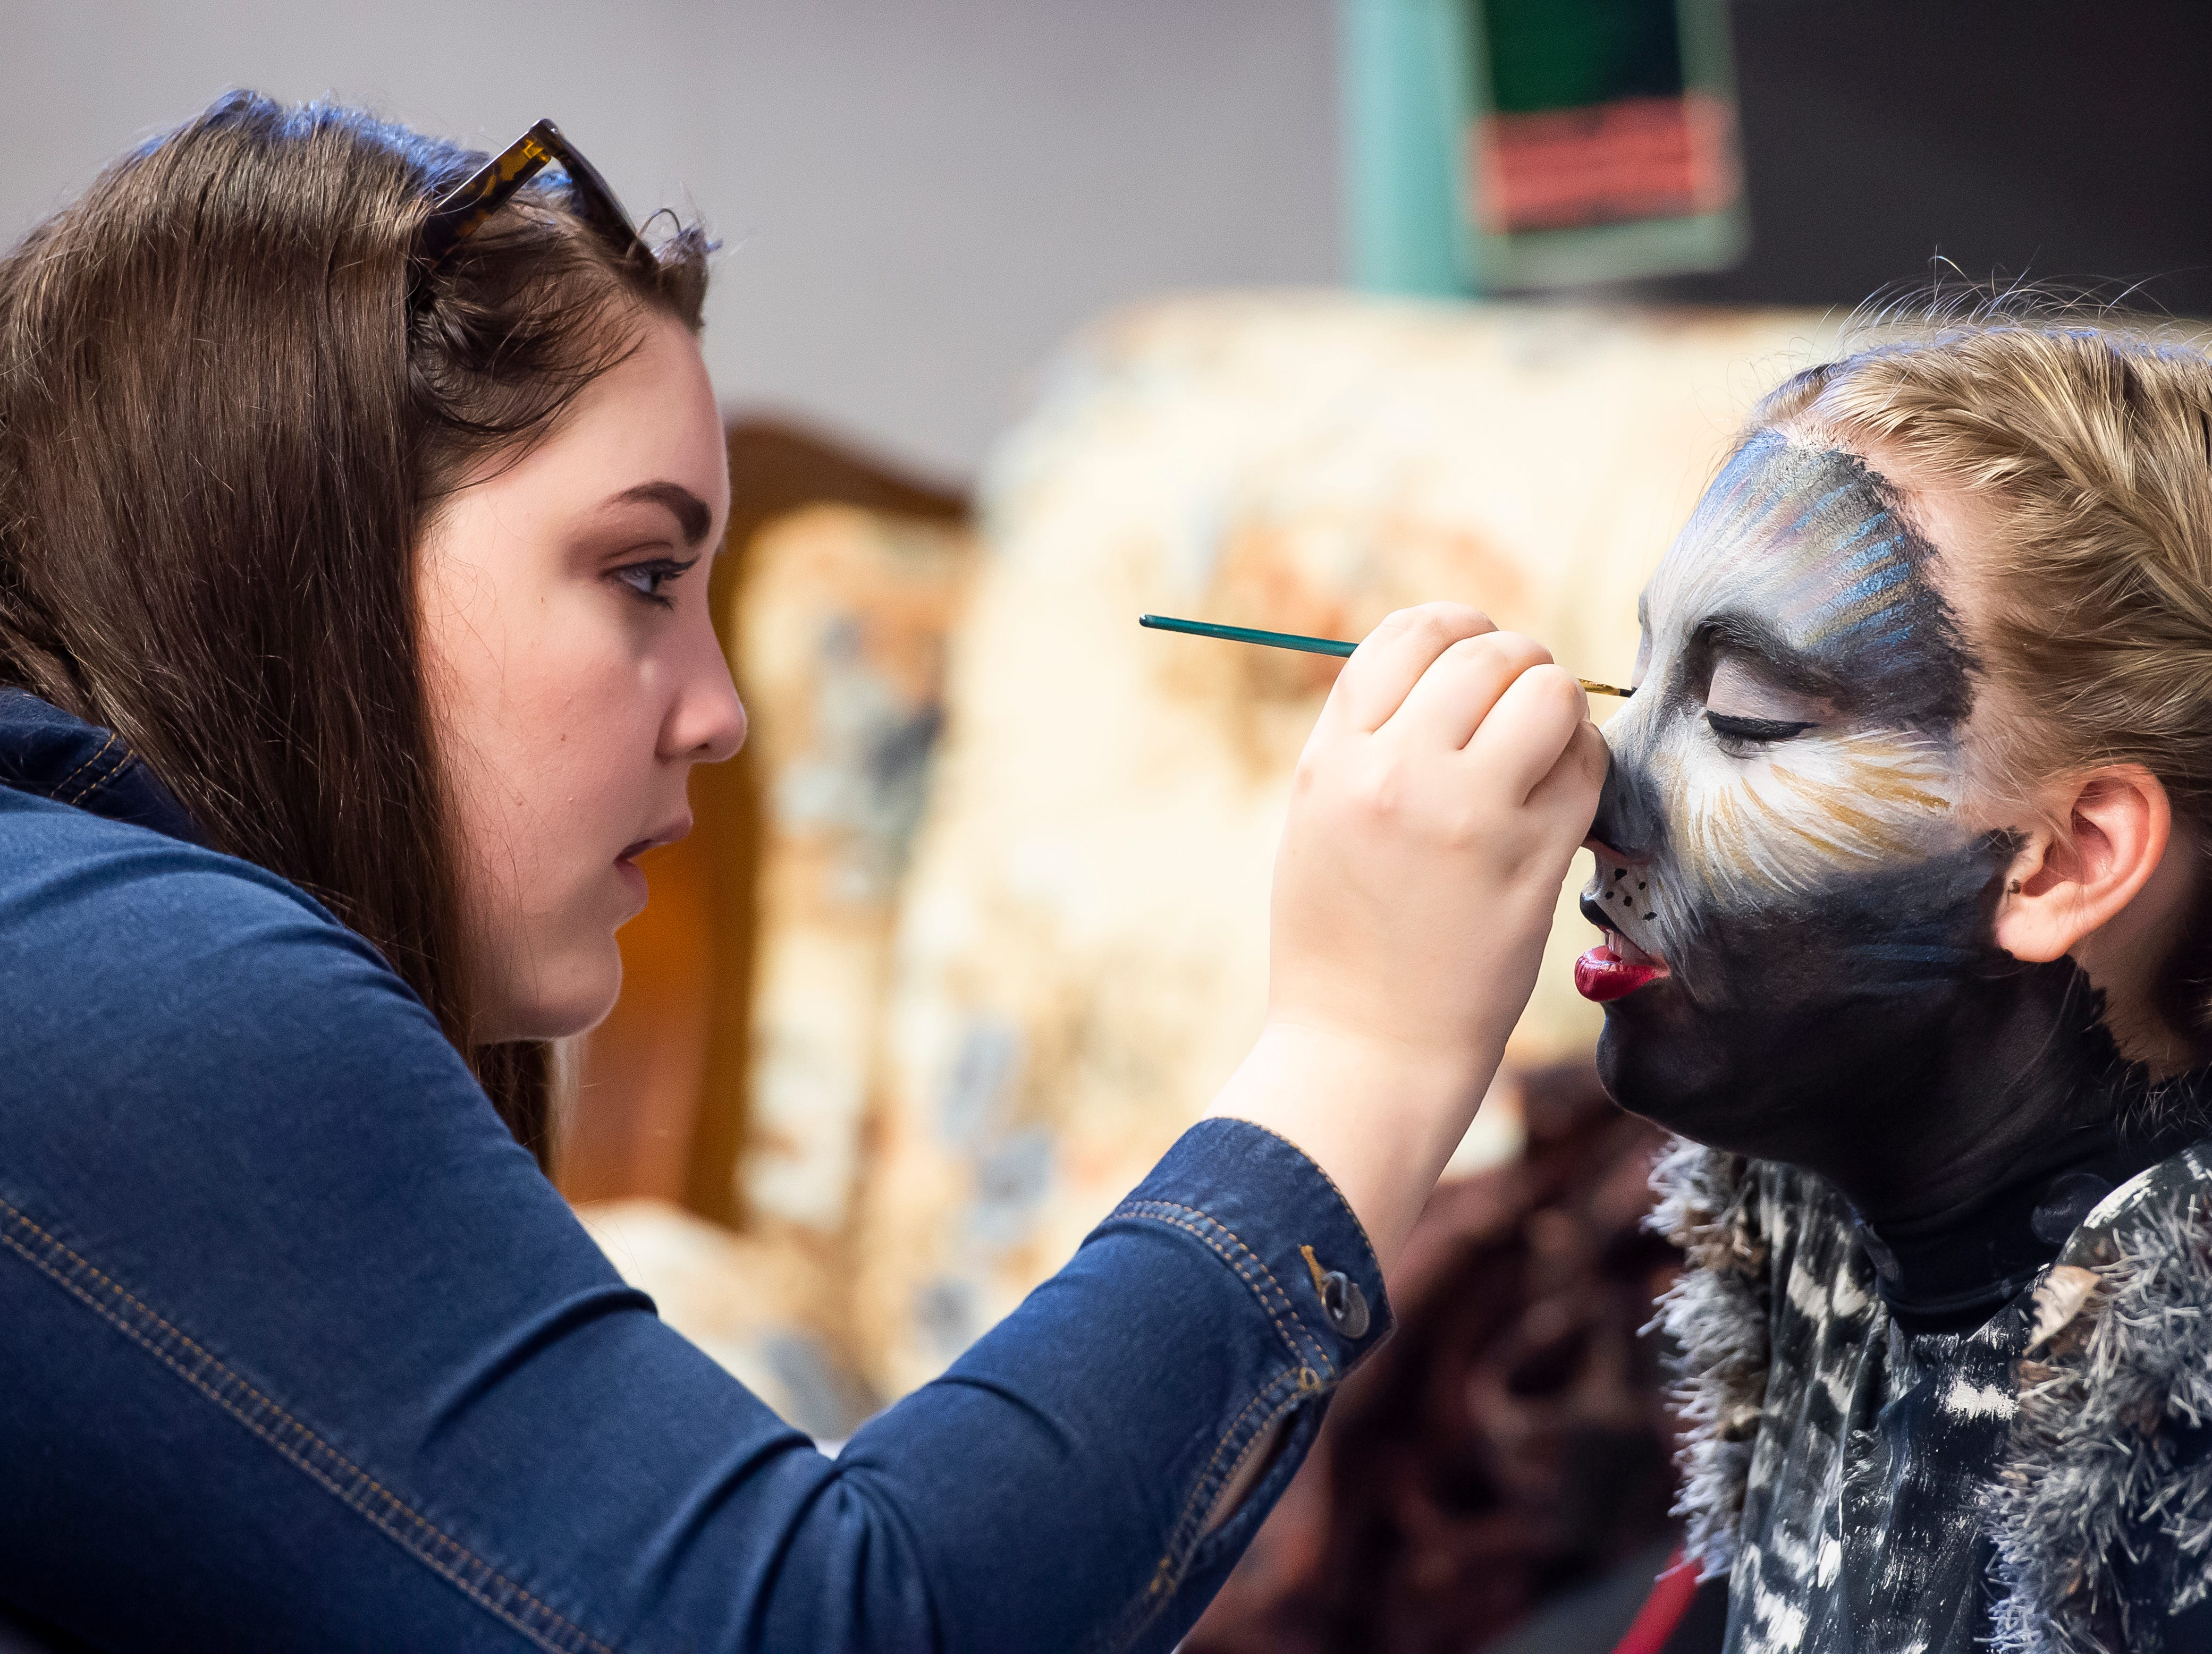 """Pressley McMaster works on Regin Smith's face makeup before the start of a dress rehearsal for the Hanover High School production of """"Cats"""" on Wednesday, April 10, 2019."""